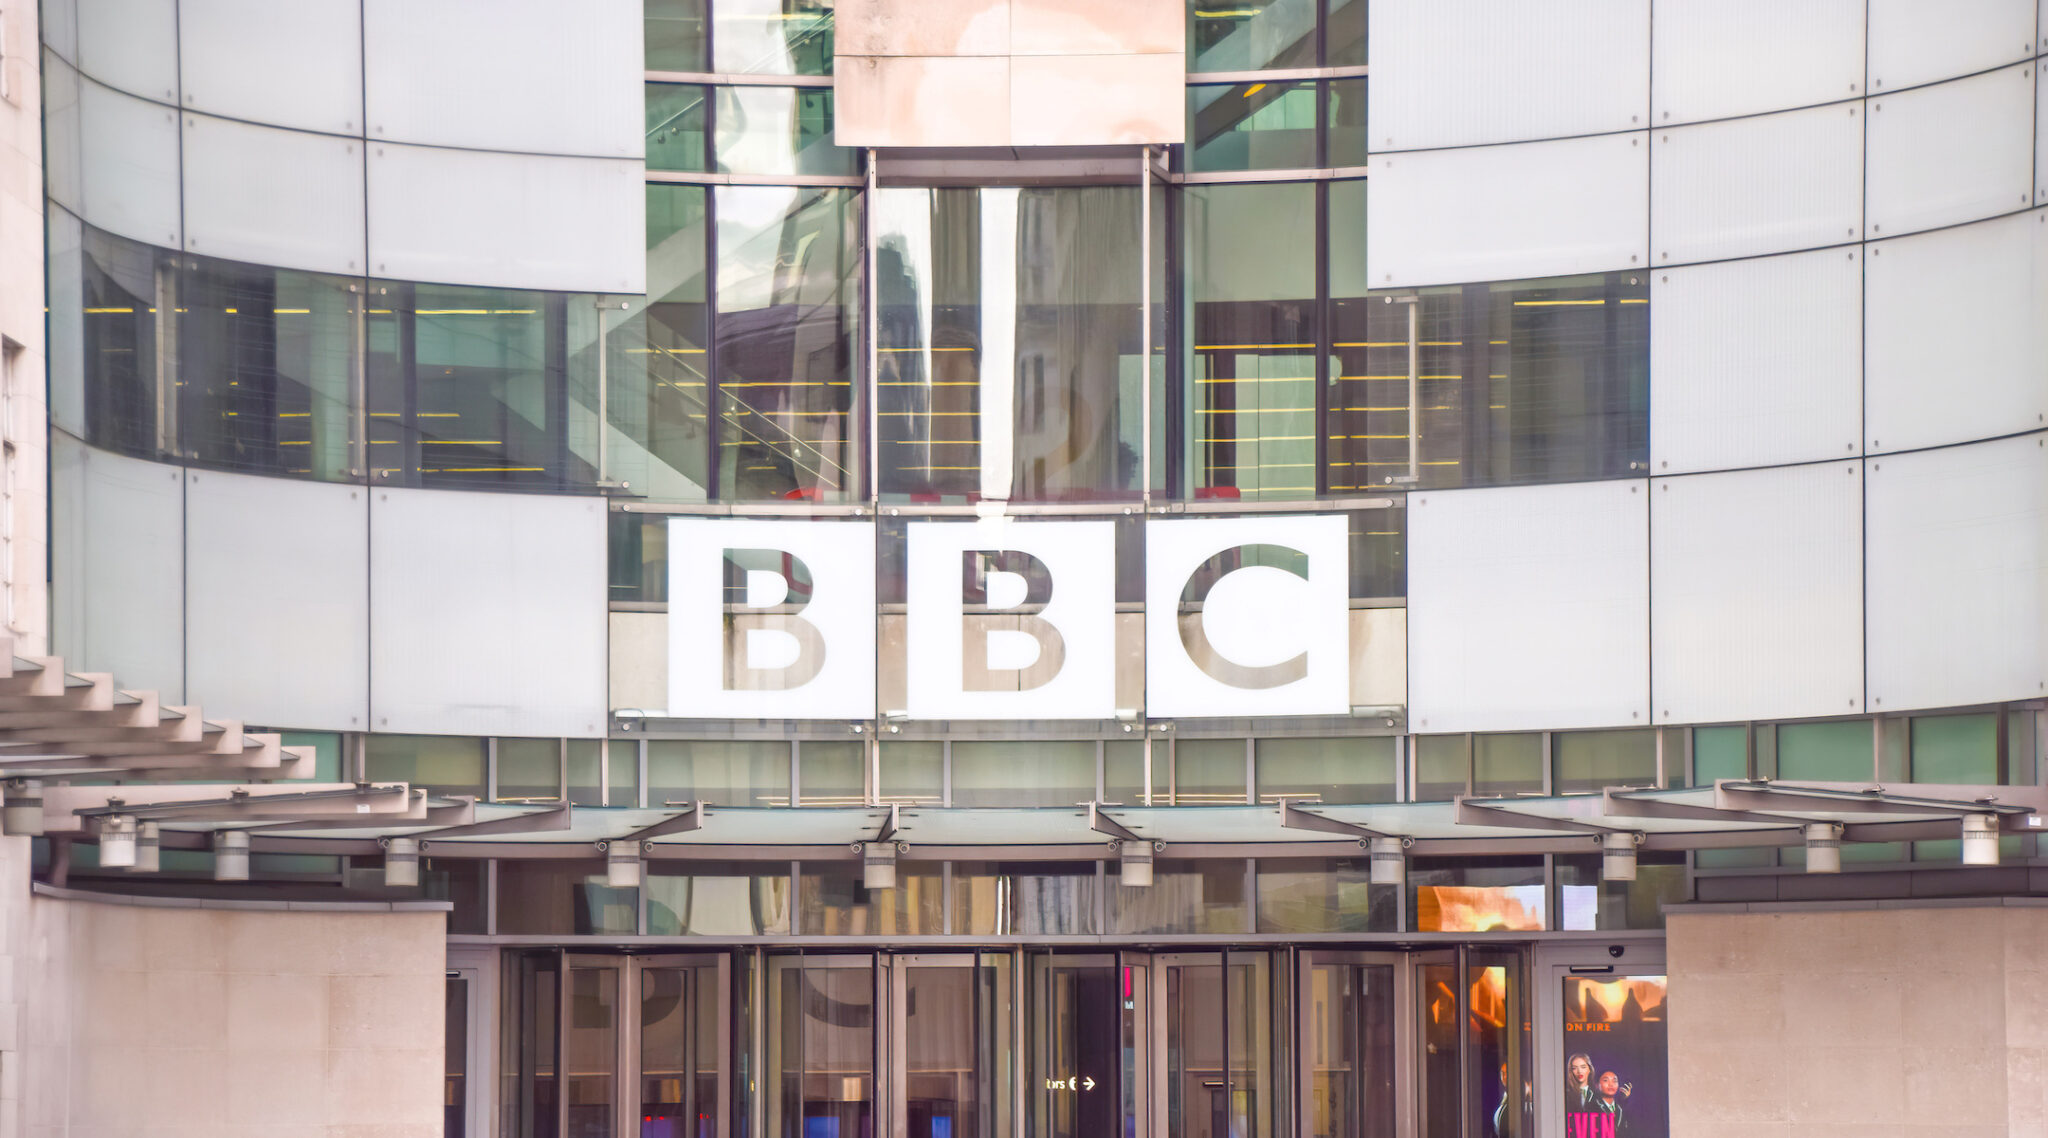 BBC headquarters in Central London in 2017. (Photo/JTA-Vuk Valcic-SOPA Images-LightRocket via Getty Images)